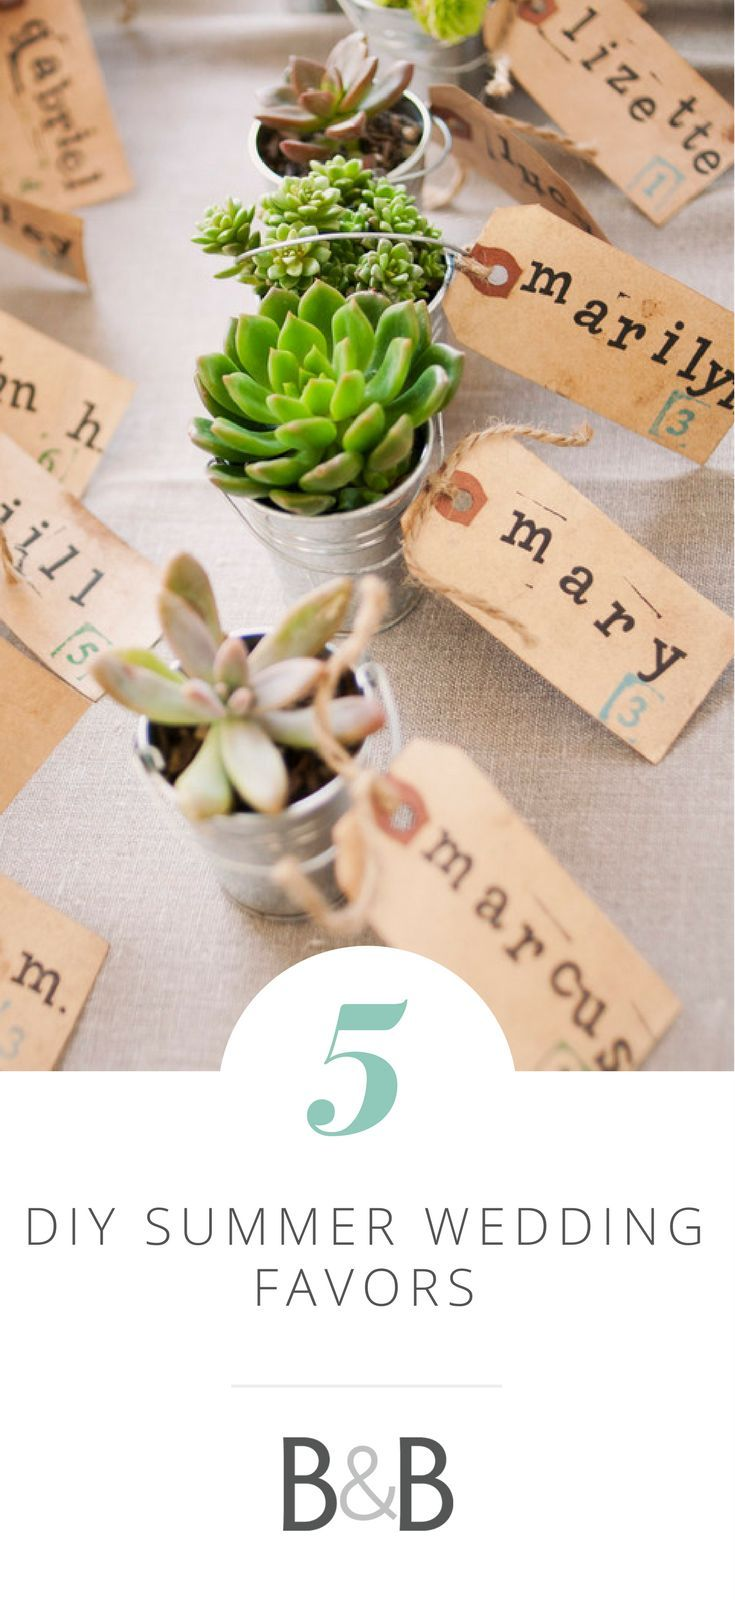 Diy summer wedding favors do it yourself succulents wedding ideas diy summer wedding favors do it yourself succulents wedding ideas solutioingenieria Gallery